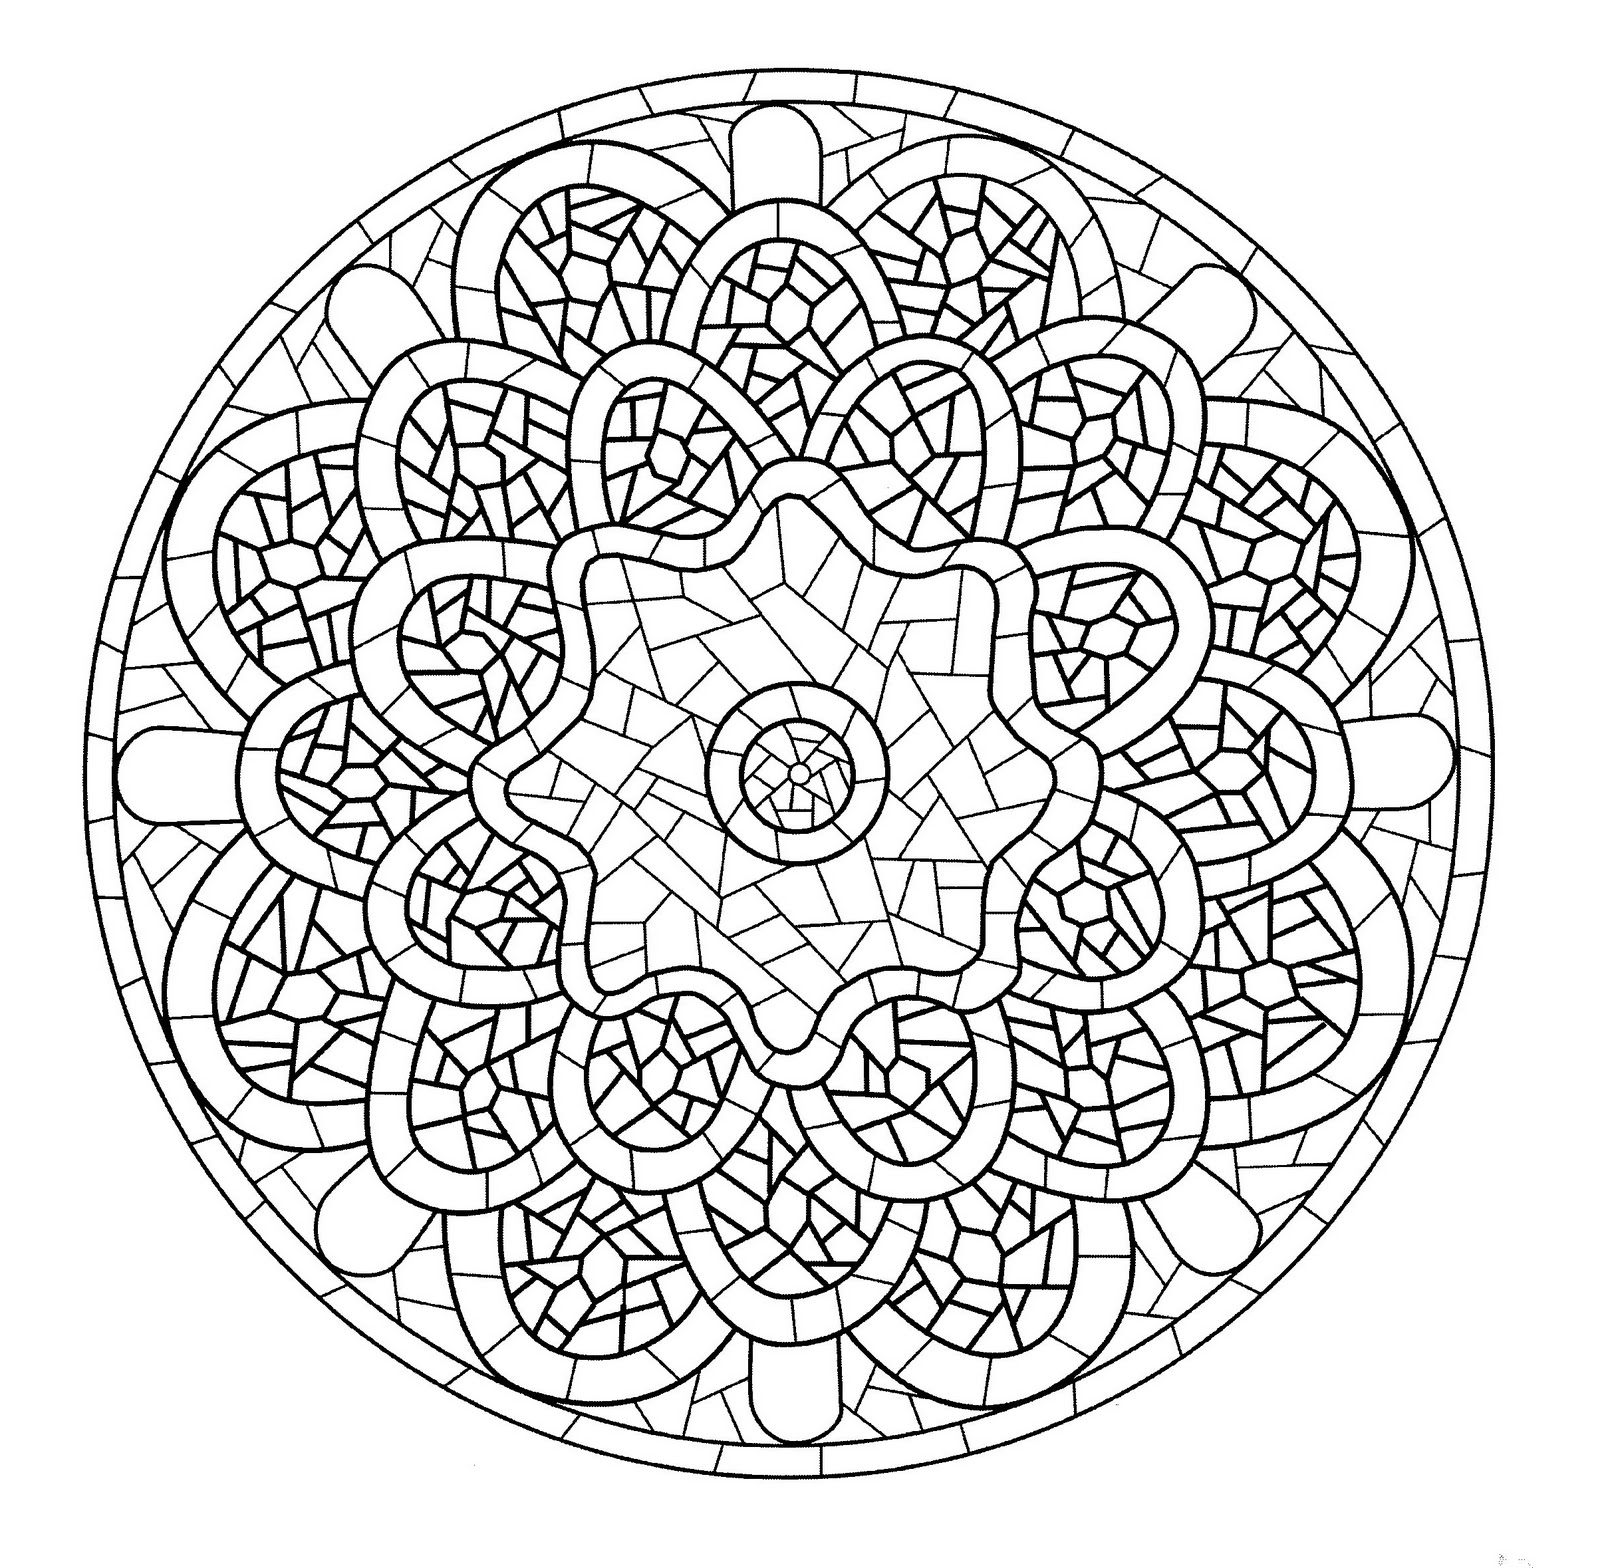 photos to coloring pages - photo#45